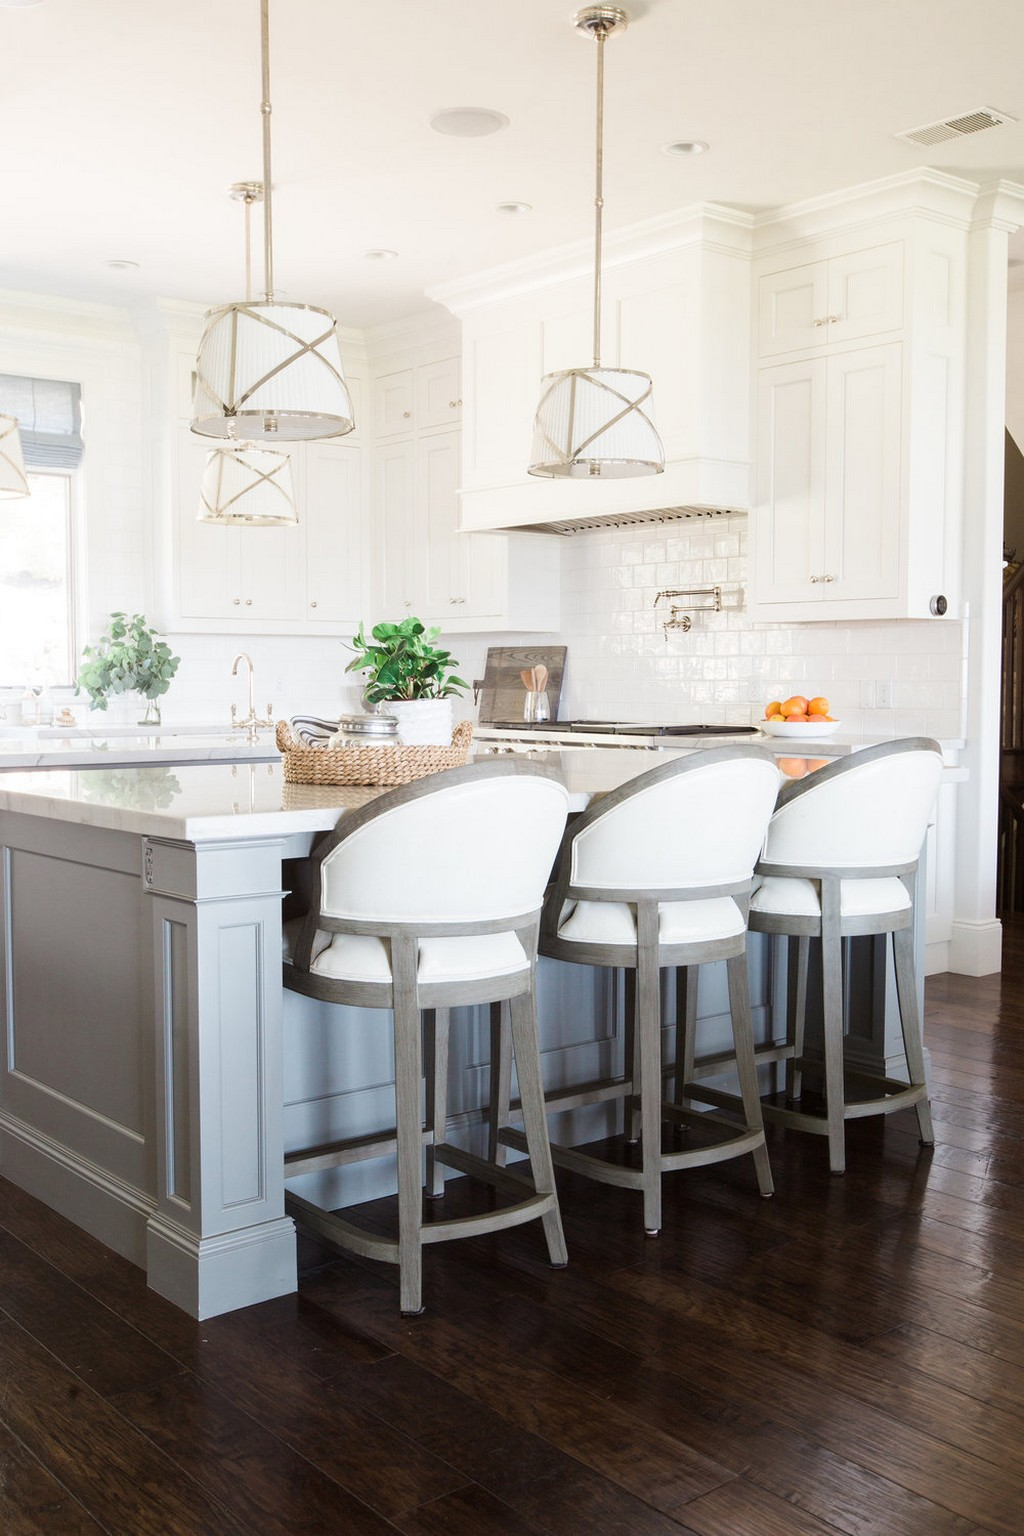 Get Your Kitchen Decor Ready for Winter W/ These White Bar Stools ...